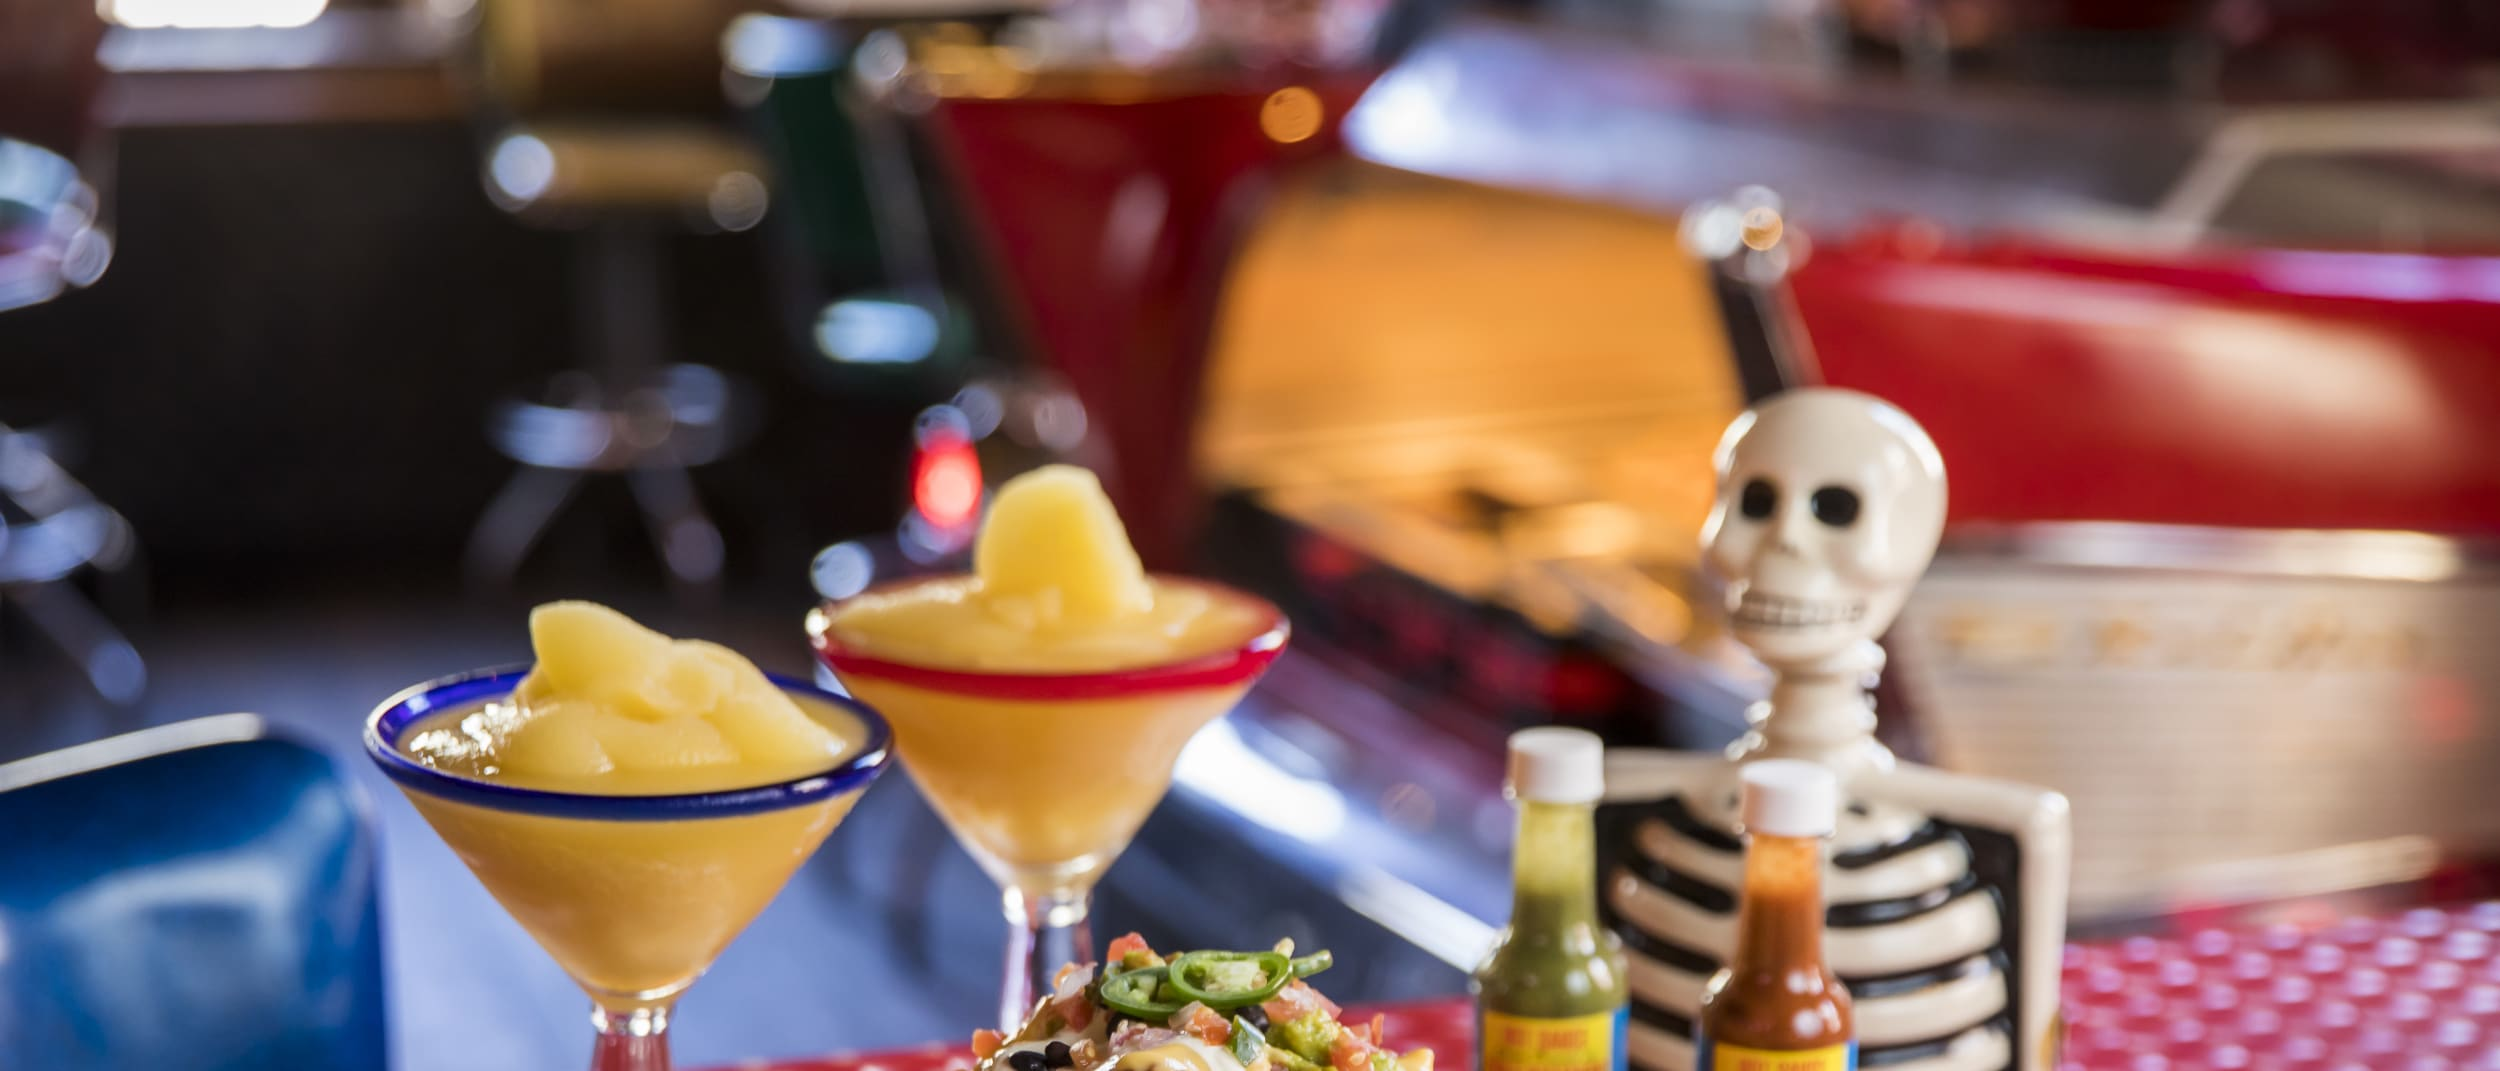 El Camino Cantina brings a taste of true Tex-Mex to our rooftop